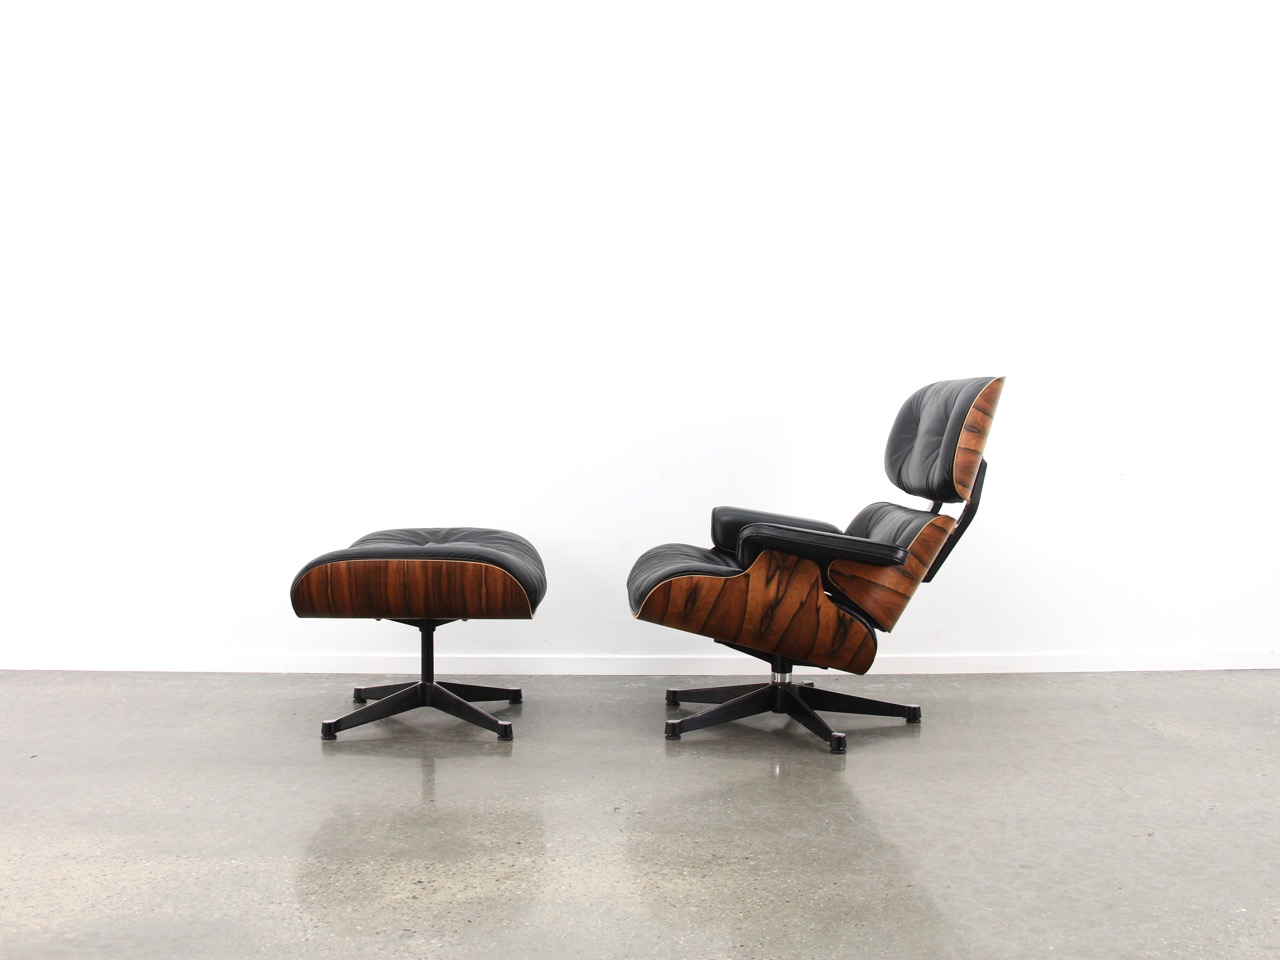 Black 1992 Vitra Eames Eames Lounge Chair & Ottoman Lounge Seating in very good condition